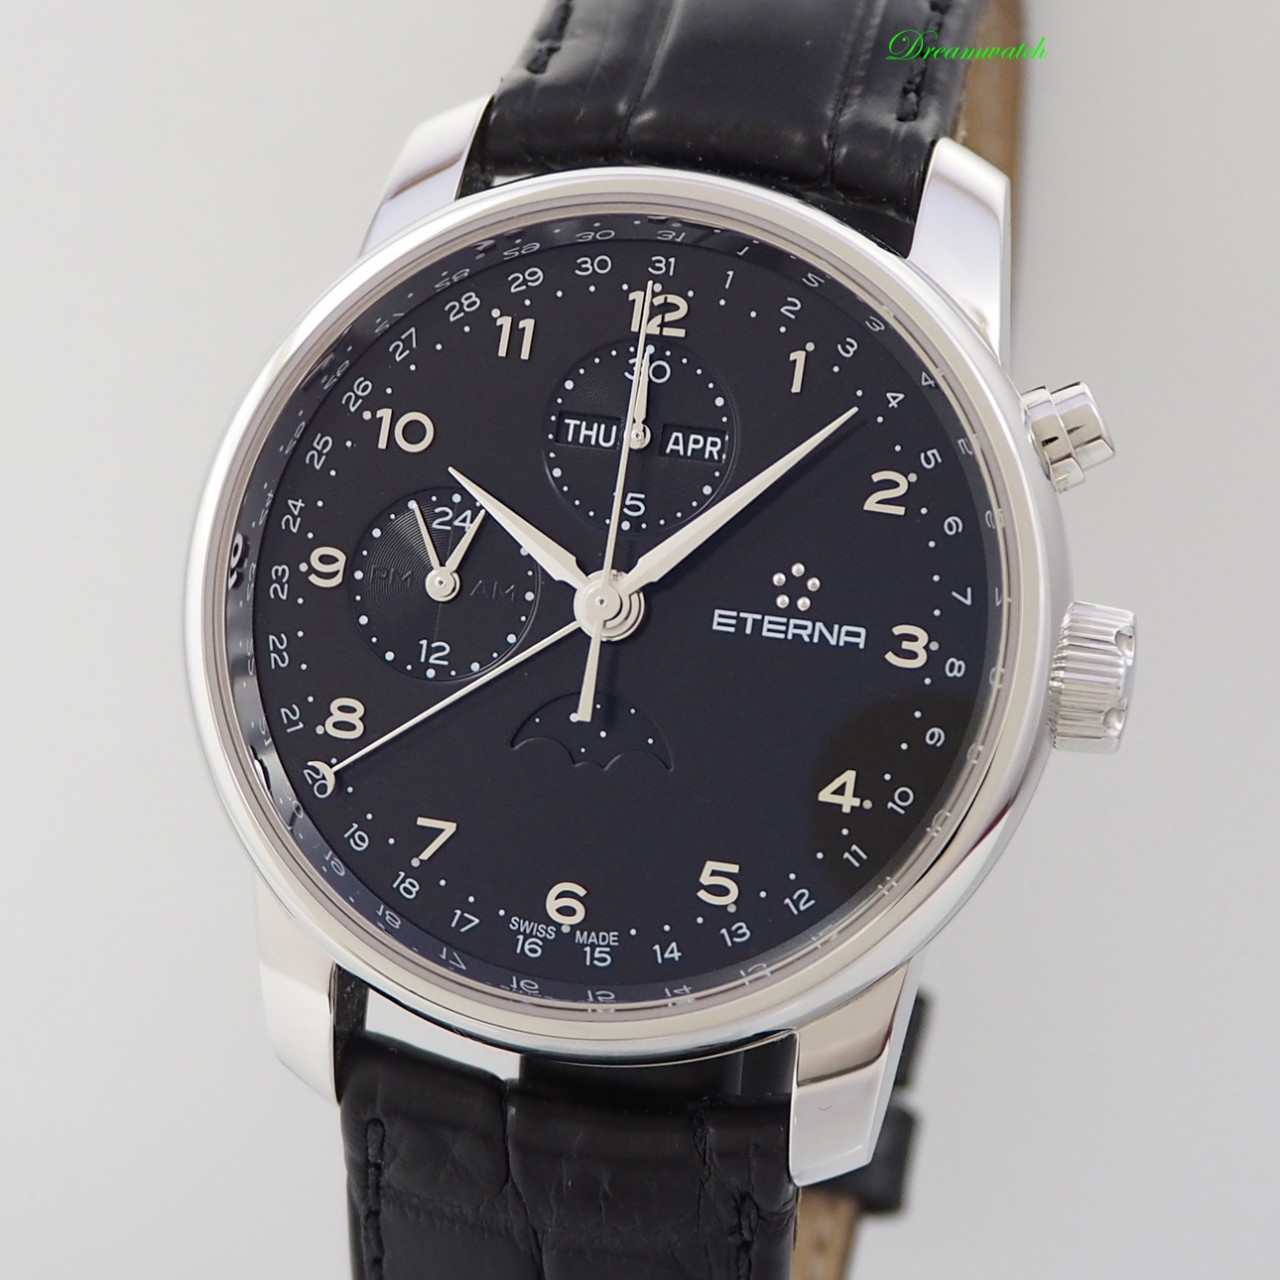 Eterna Soleure Calendar Moon Chronograph Ref.: 8340.41 Box+Papers